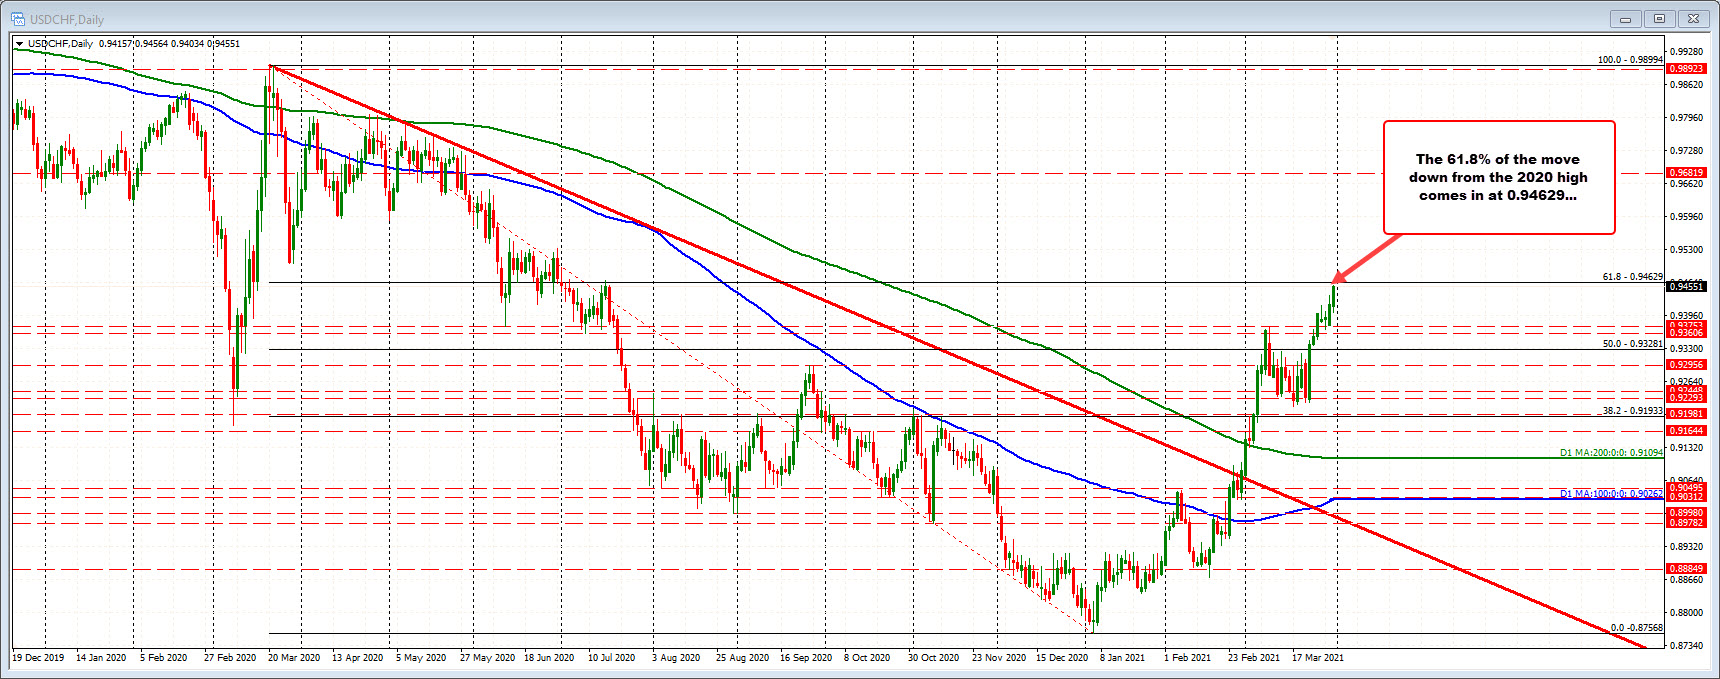 USDCHF on the daily chart